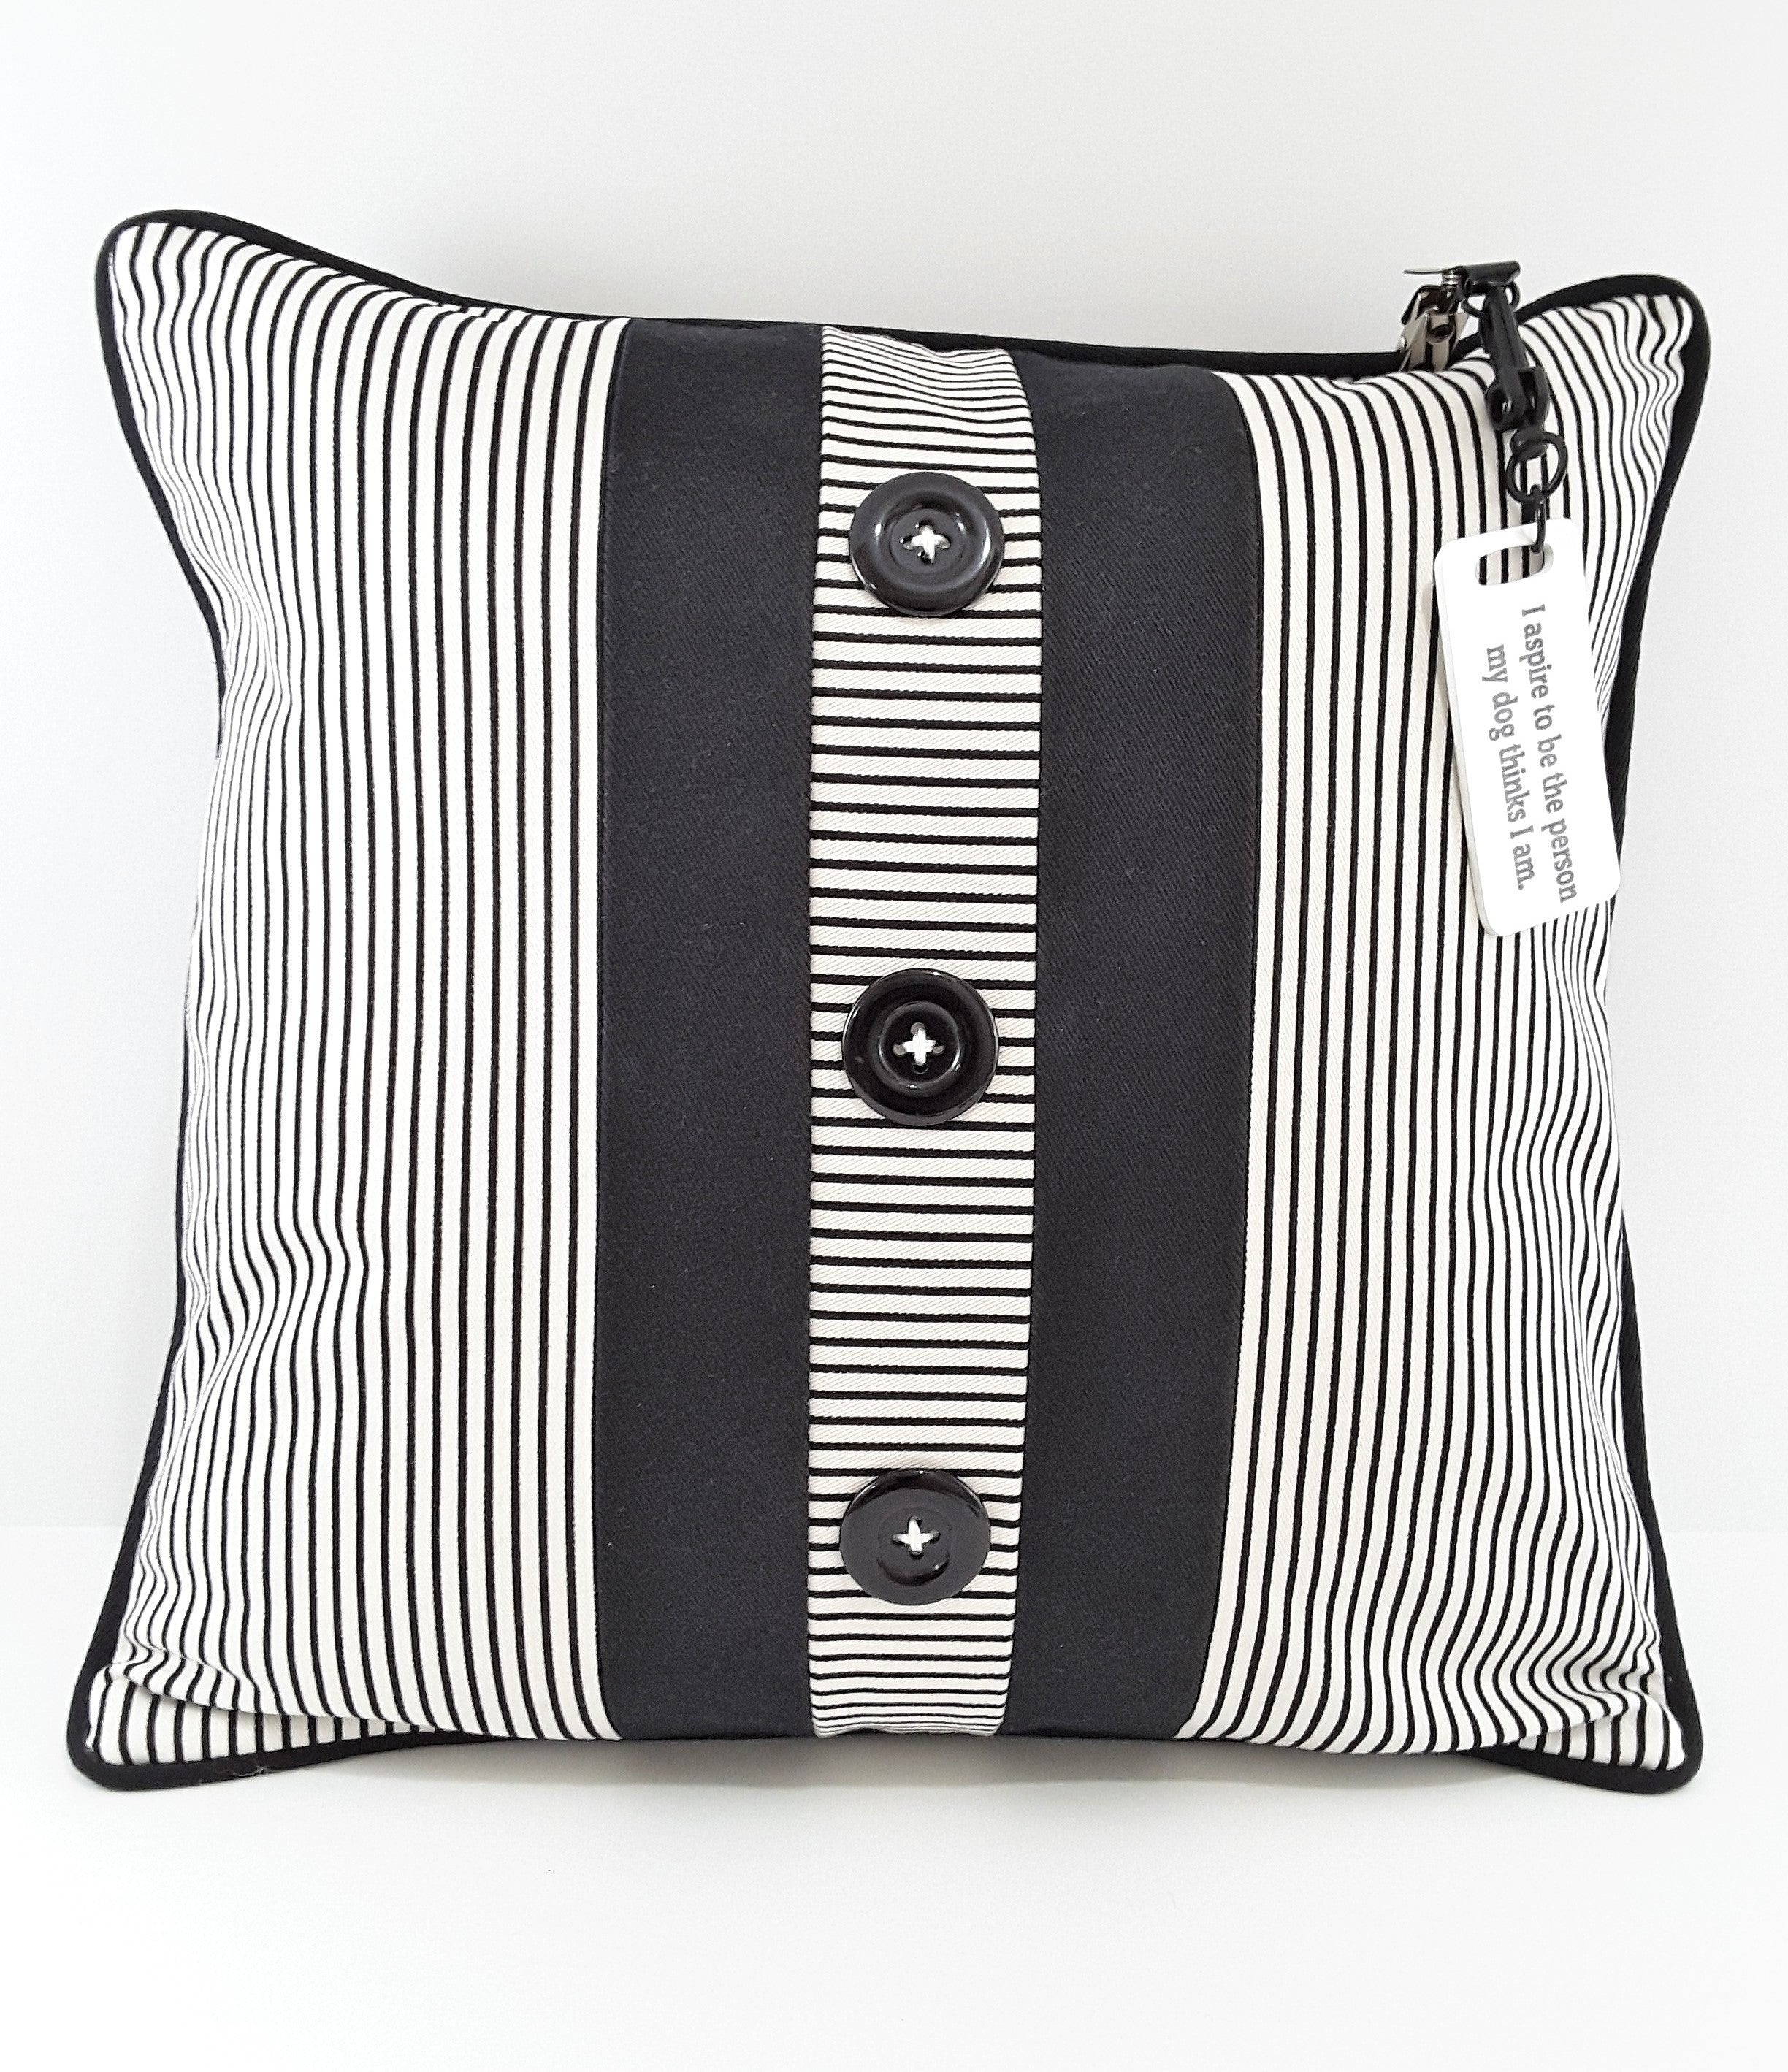 WHITE PILLOW TAG ON STRIPE, 3 BUTTON PILLOW